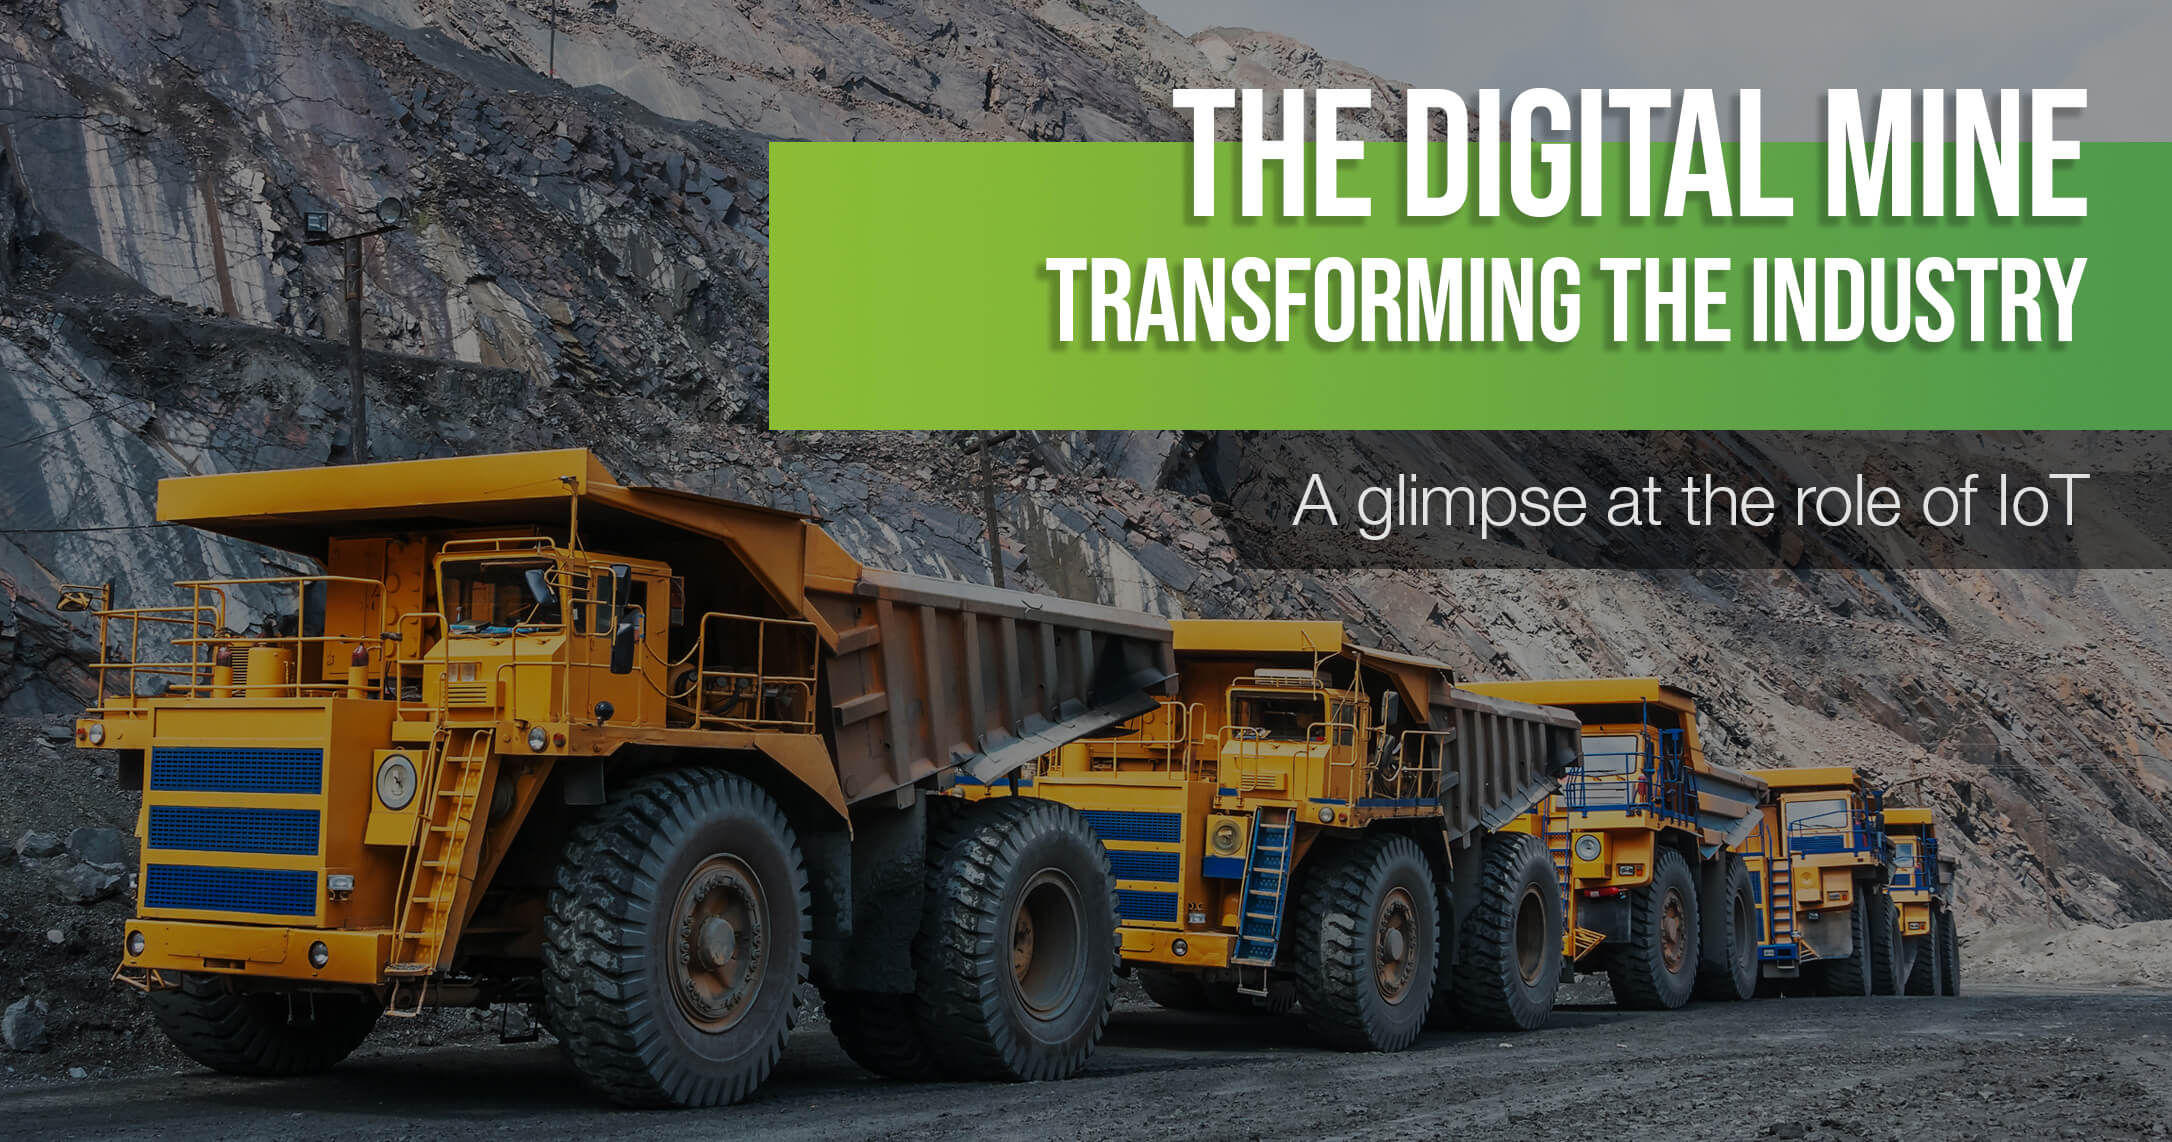 The Digital Mine: How IoT Is Transforming The Mining Industry